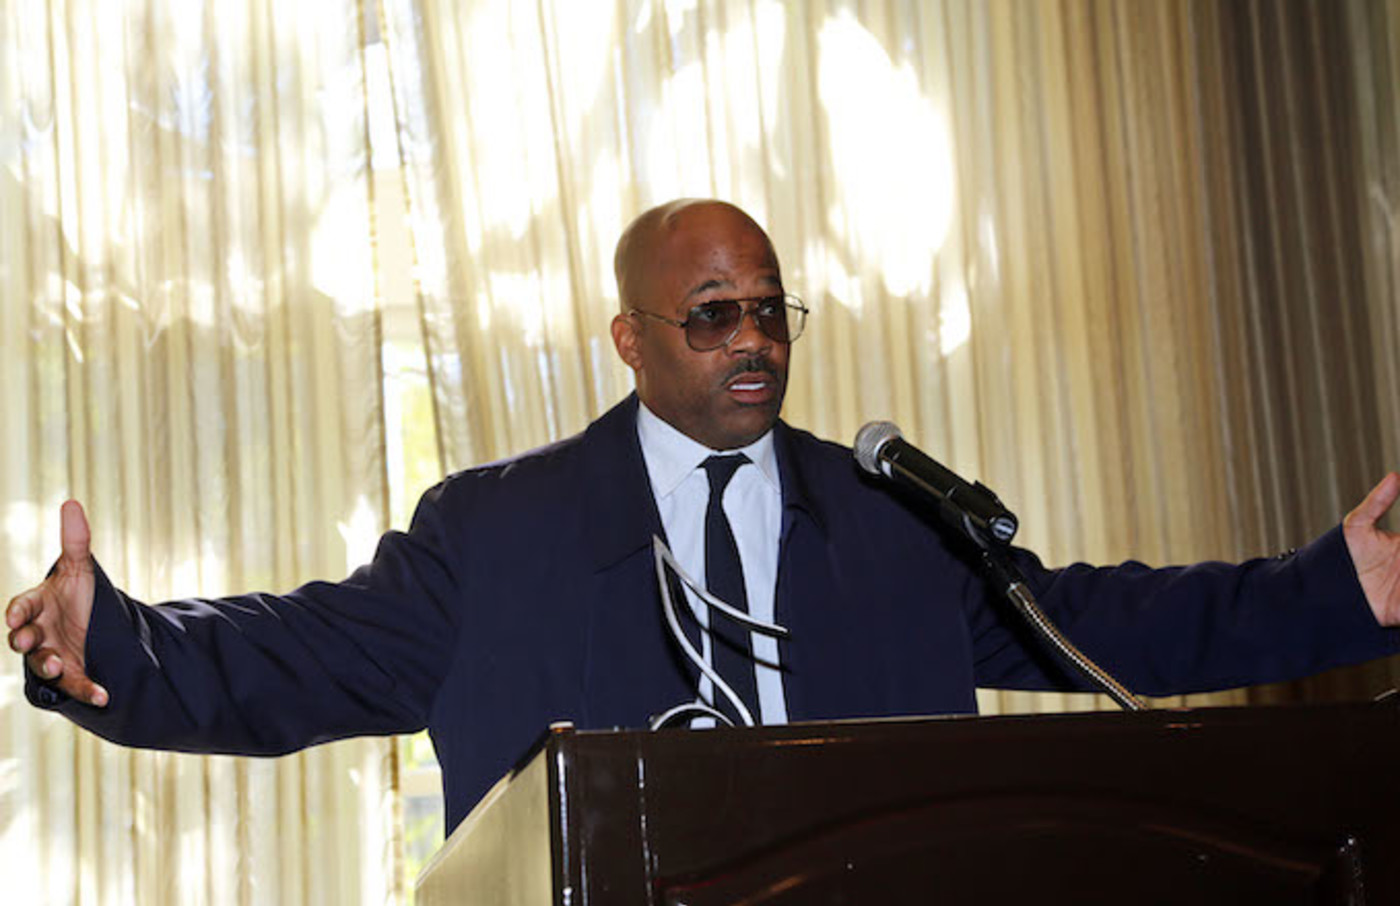 Damon Dash speaks at The 2015 Grammy Awards.